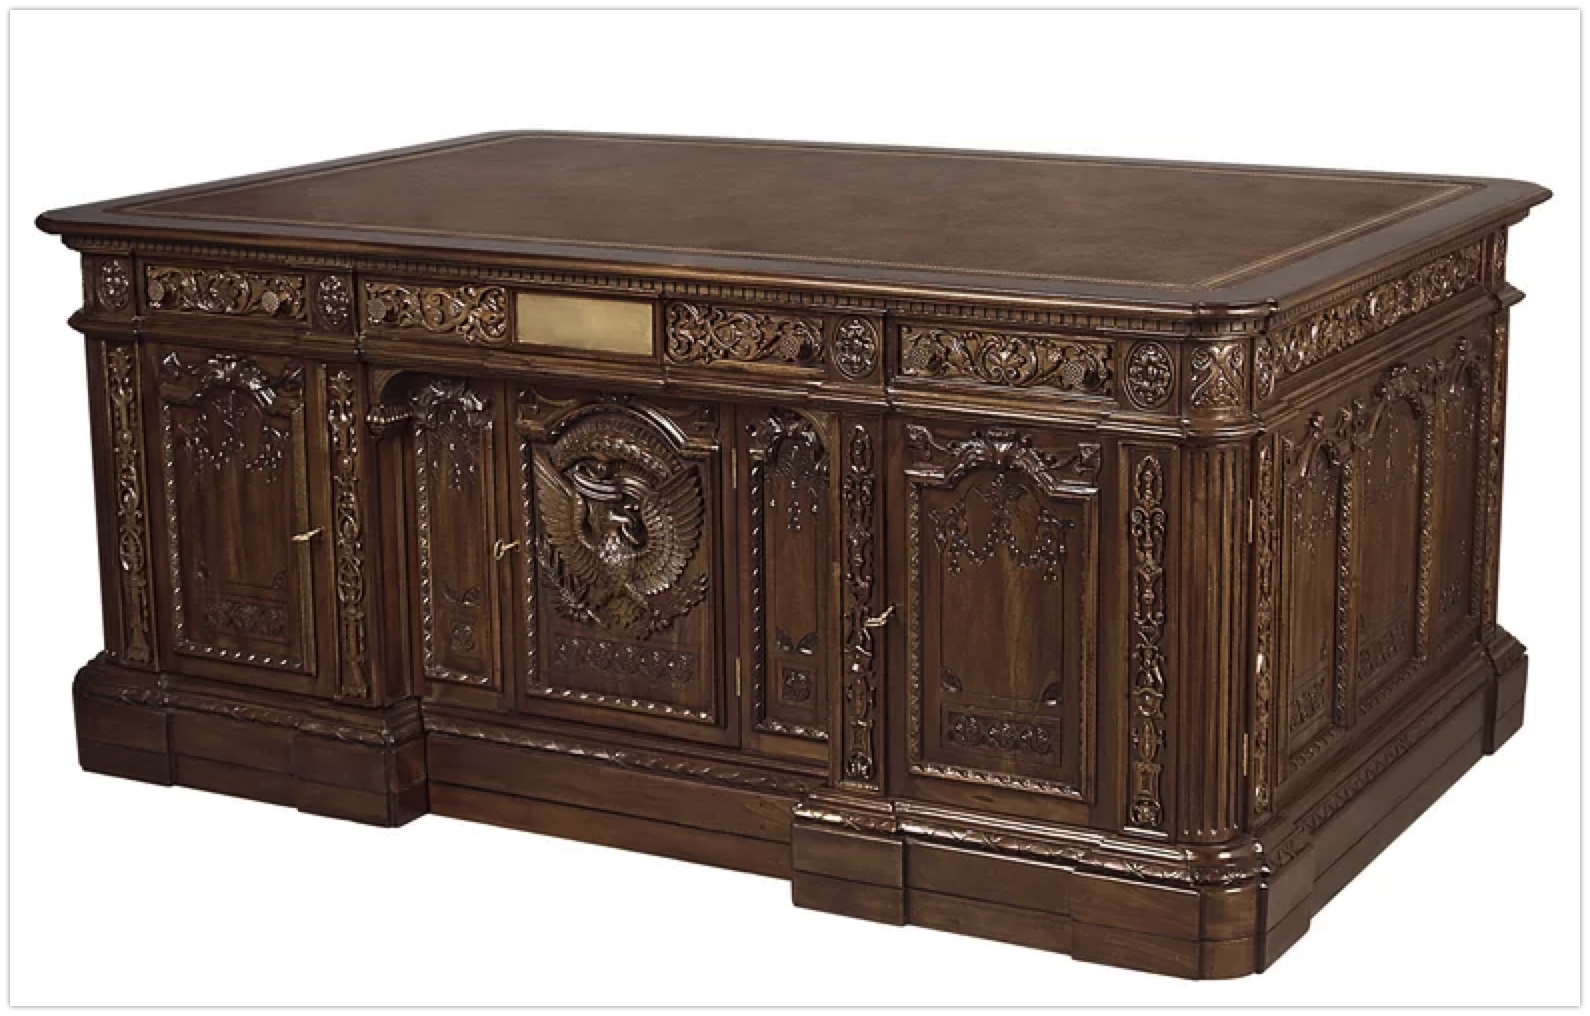 resolute-desk-replica